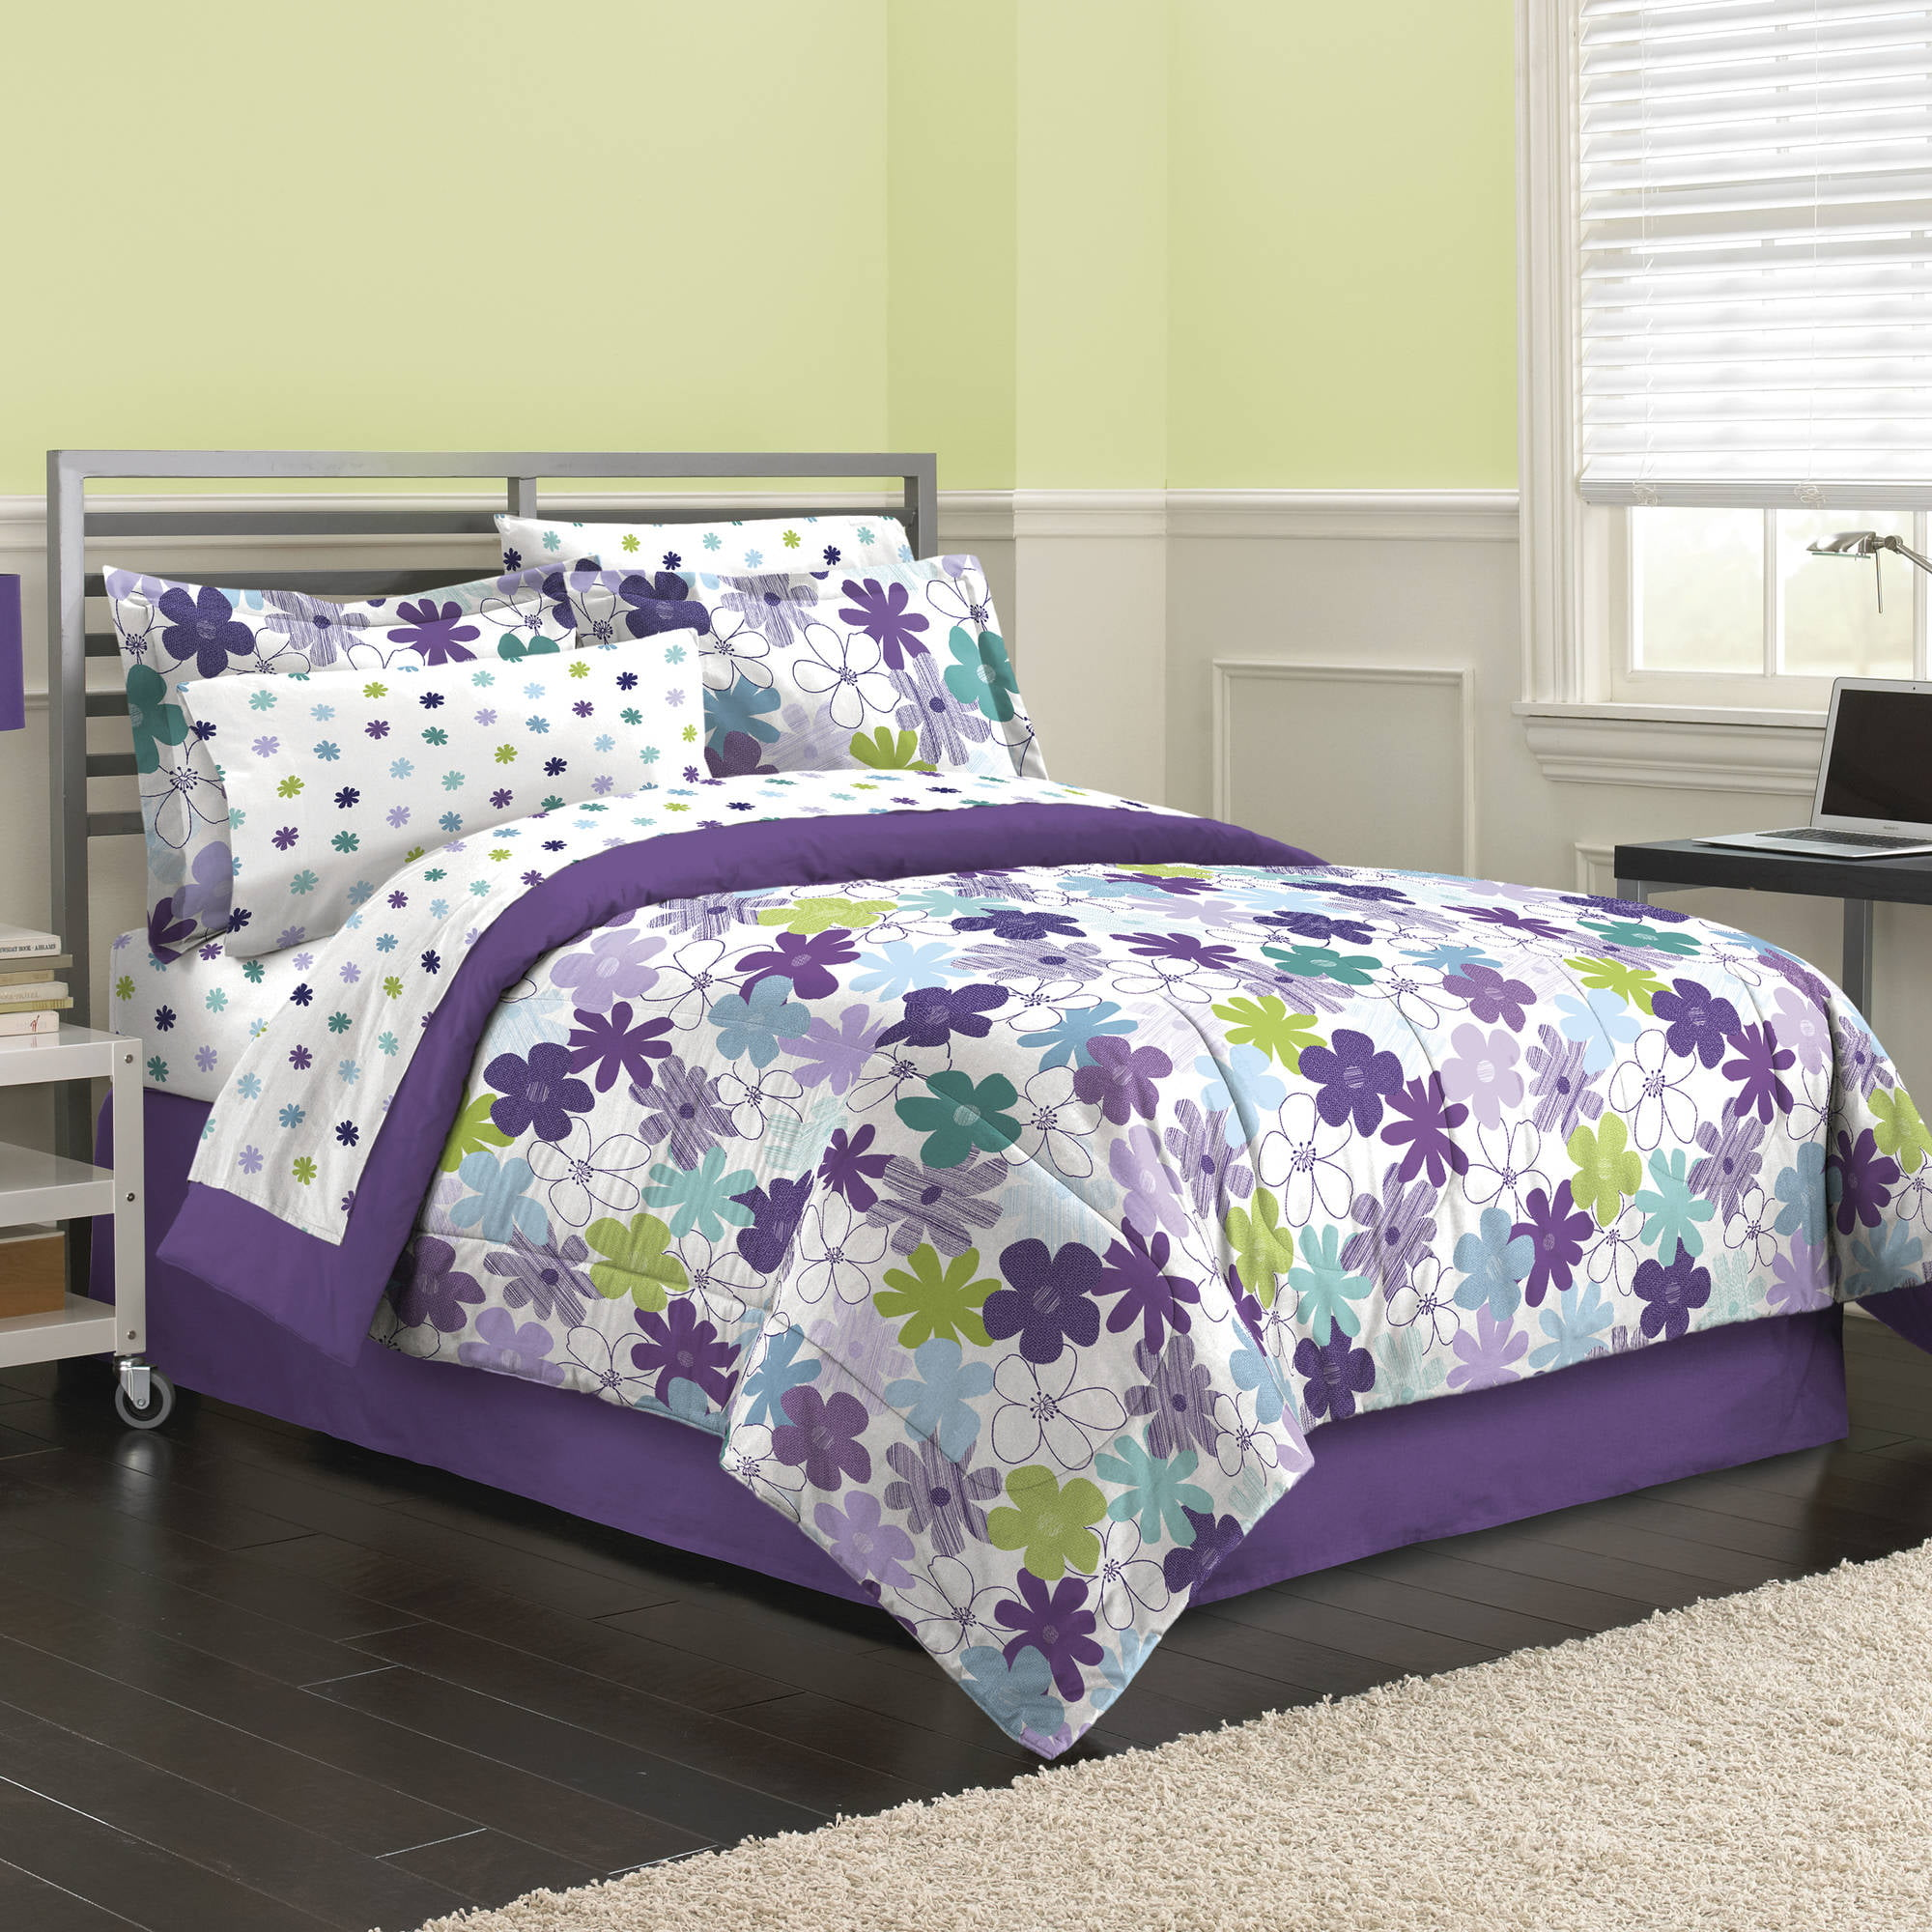 First At Home Graphic Daisy Bed in a Bag Bedding Set Purple